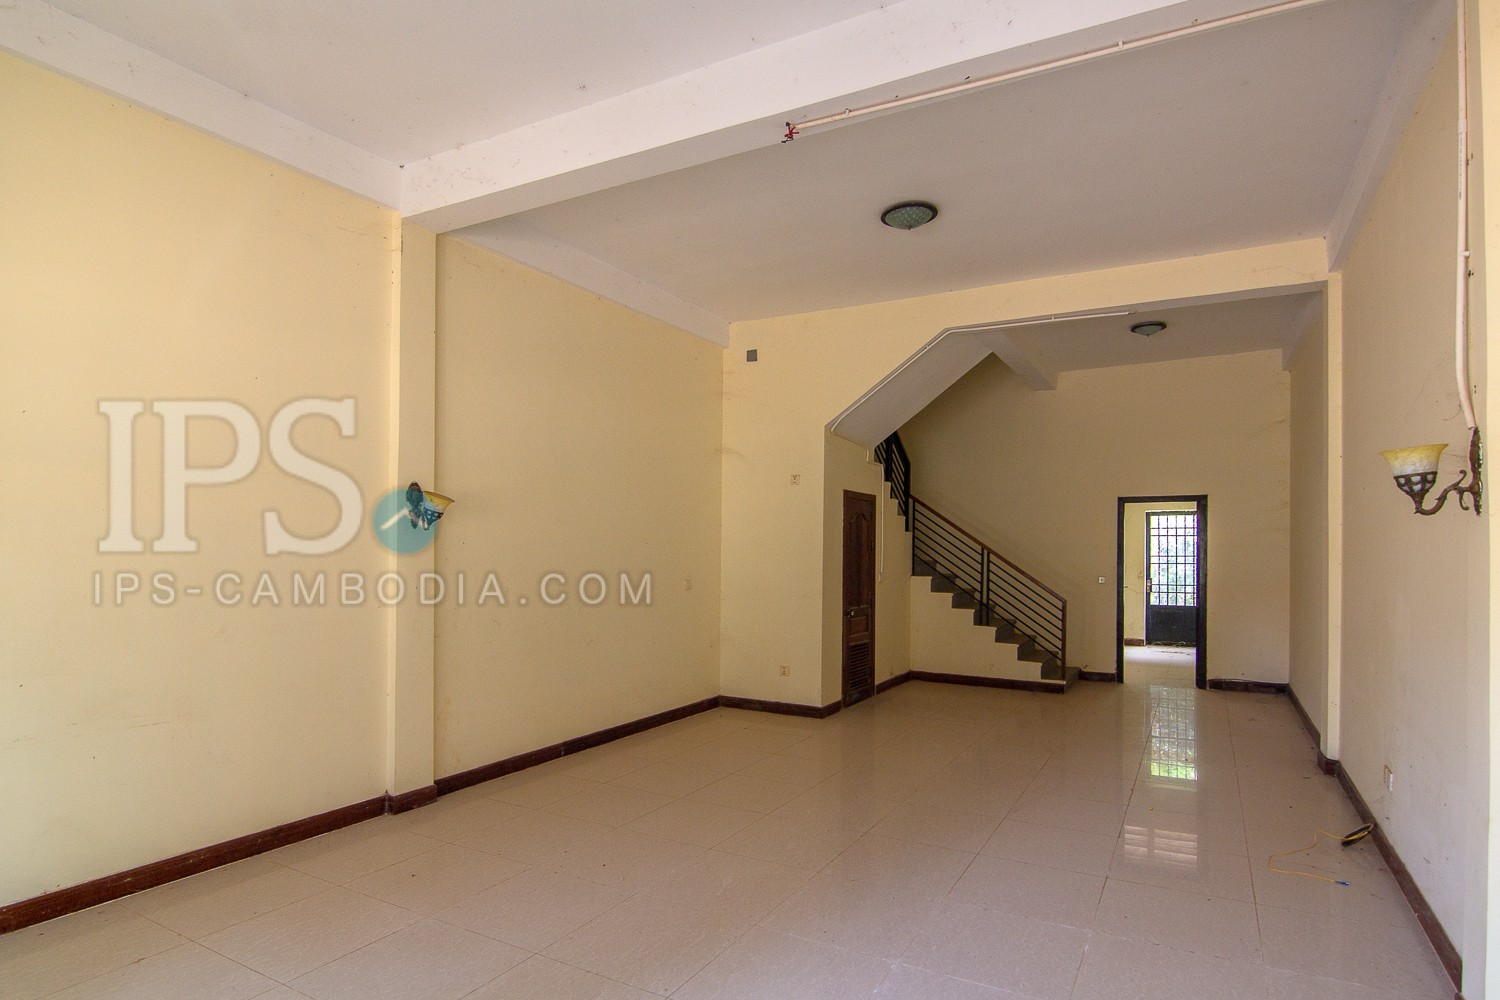 3 Bedroom Twin Villa For Sale - Svay Thom, Siem Reap